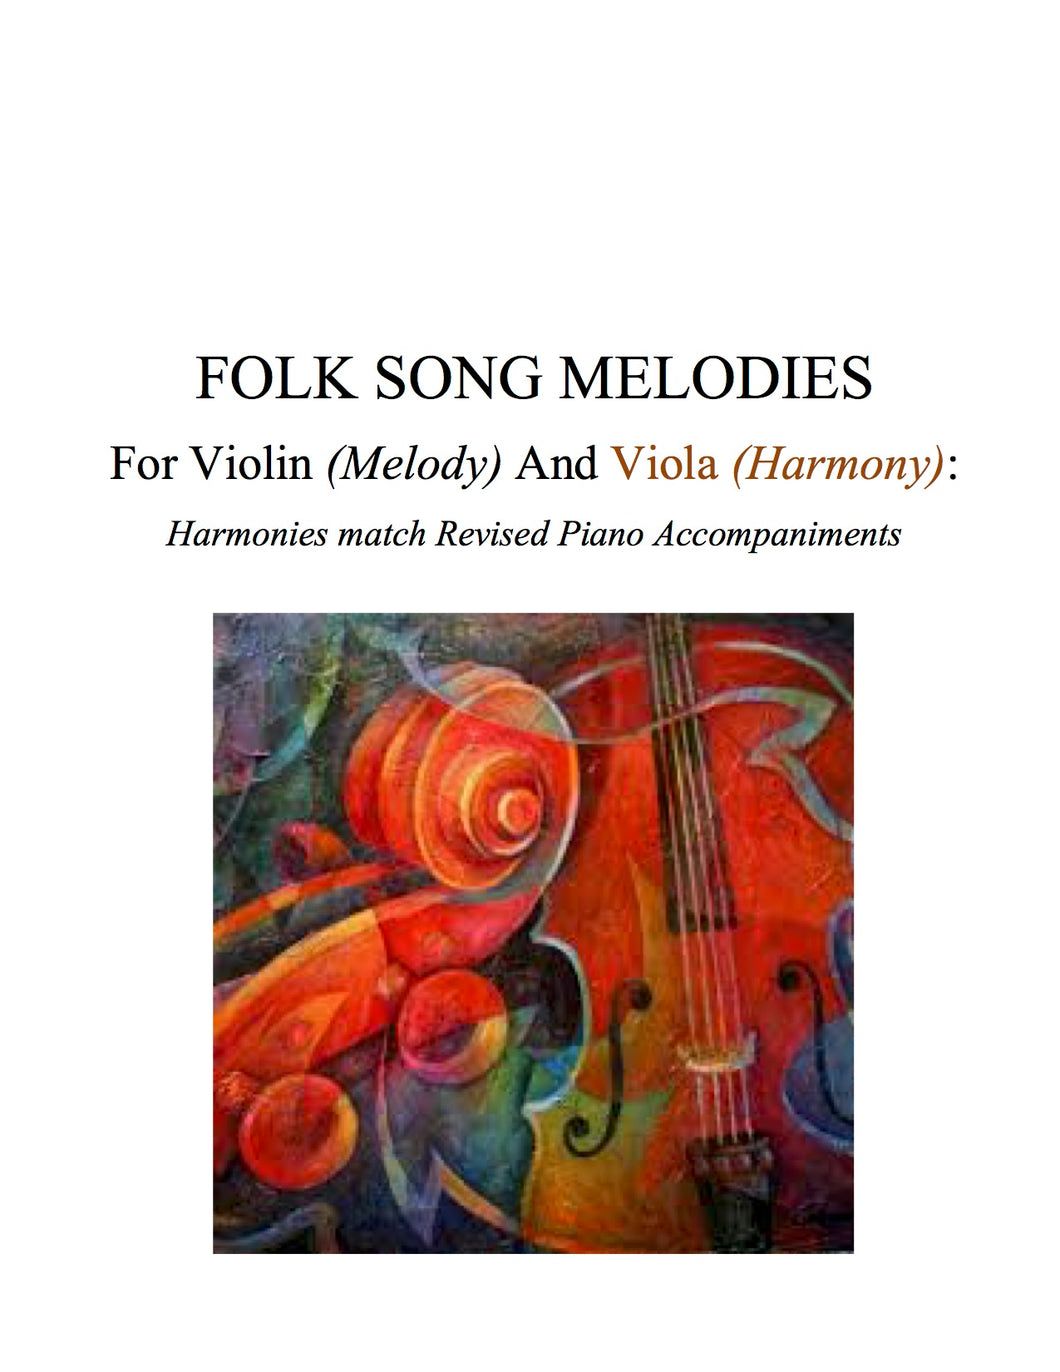 016 BUNDLE - Folk Song Melodies For Violin (Melody) and Viola (Harmony) Twinkle - Etude